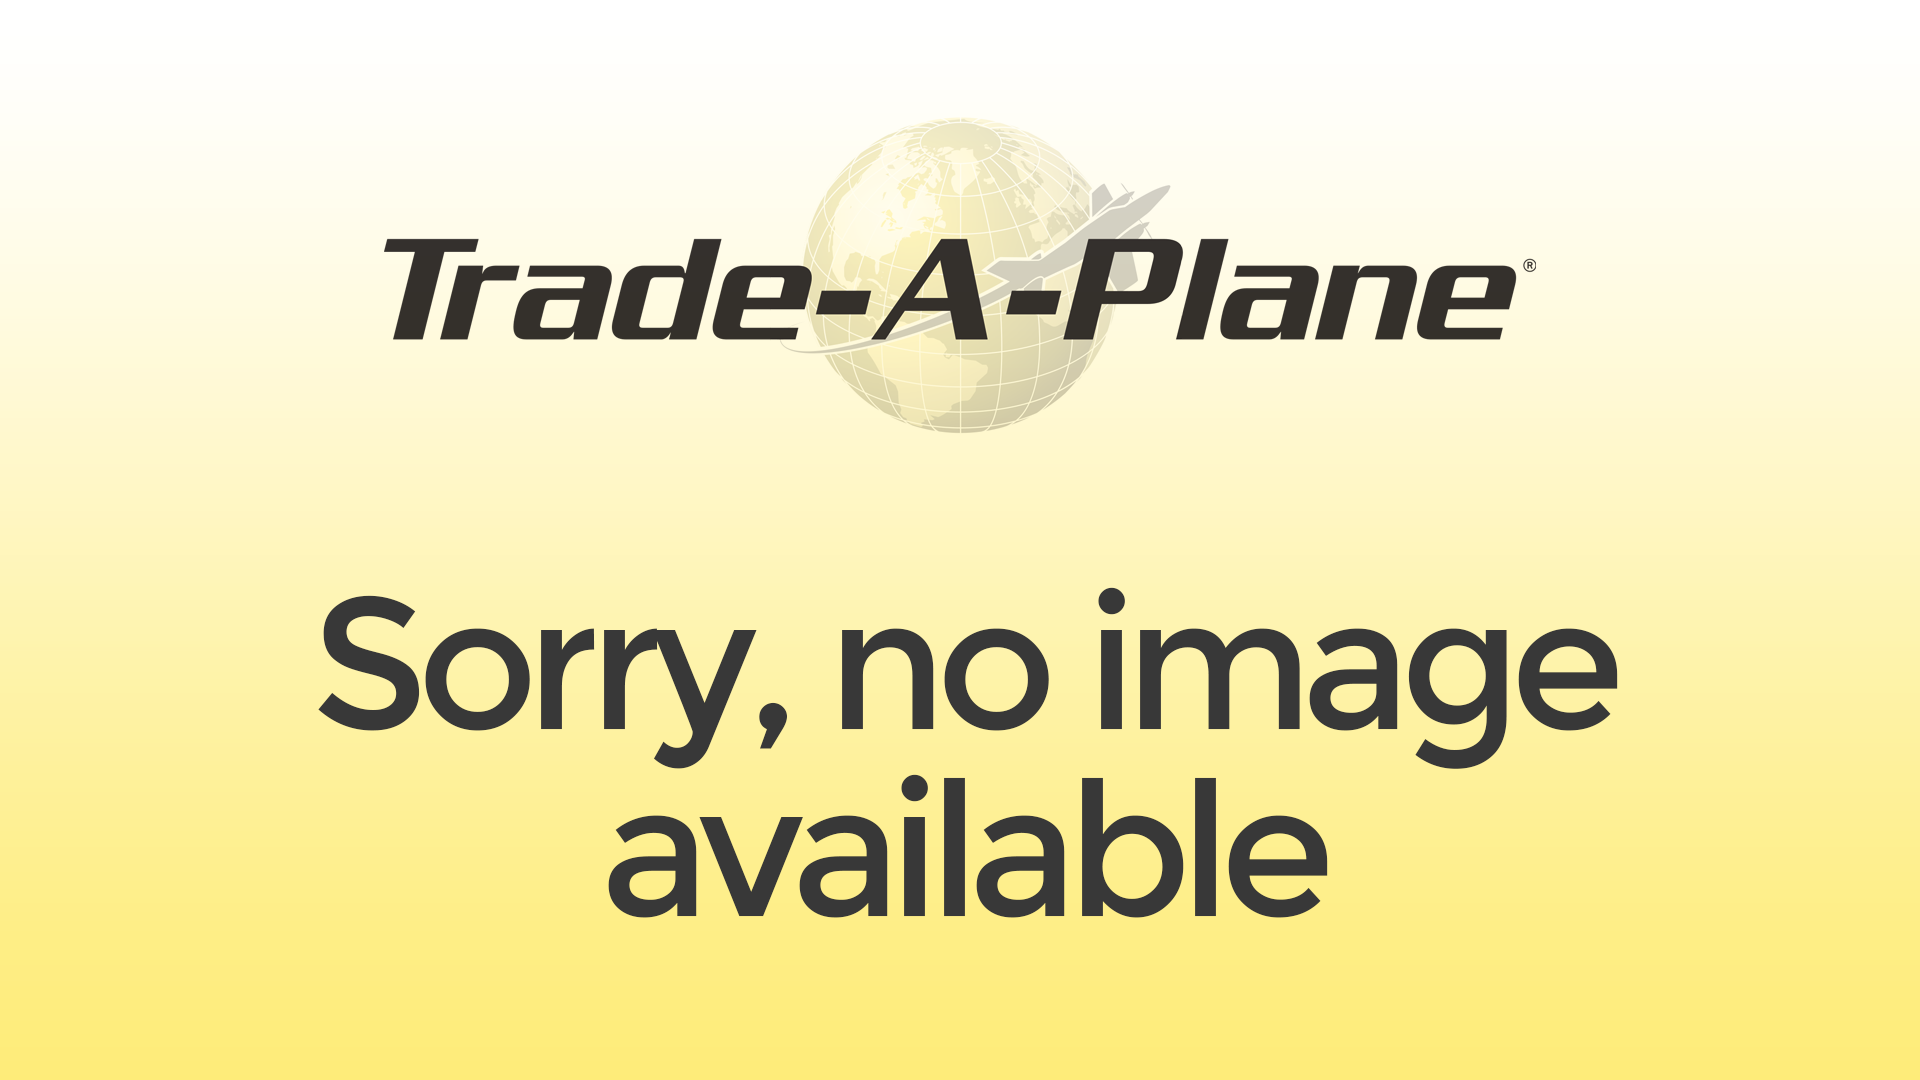 http://www.trade-a-plane.com/display-asset?id=99485